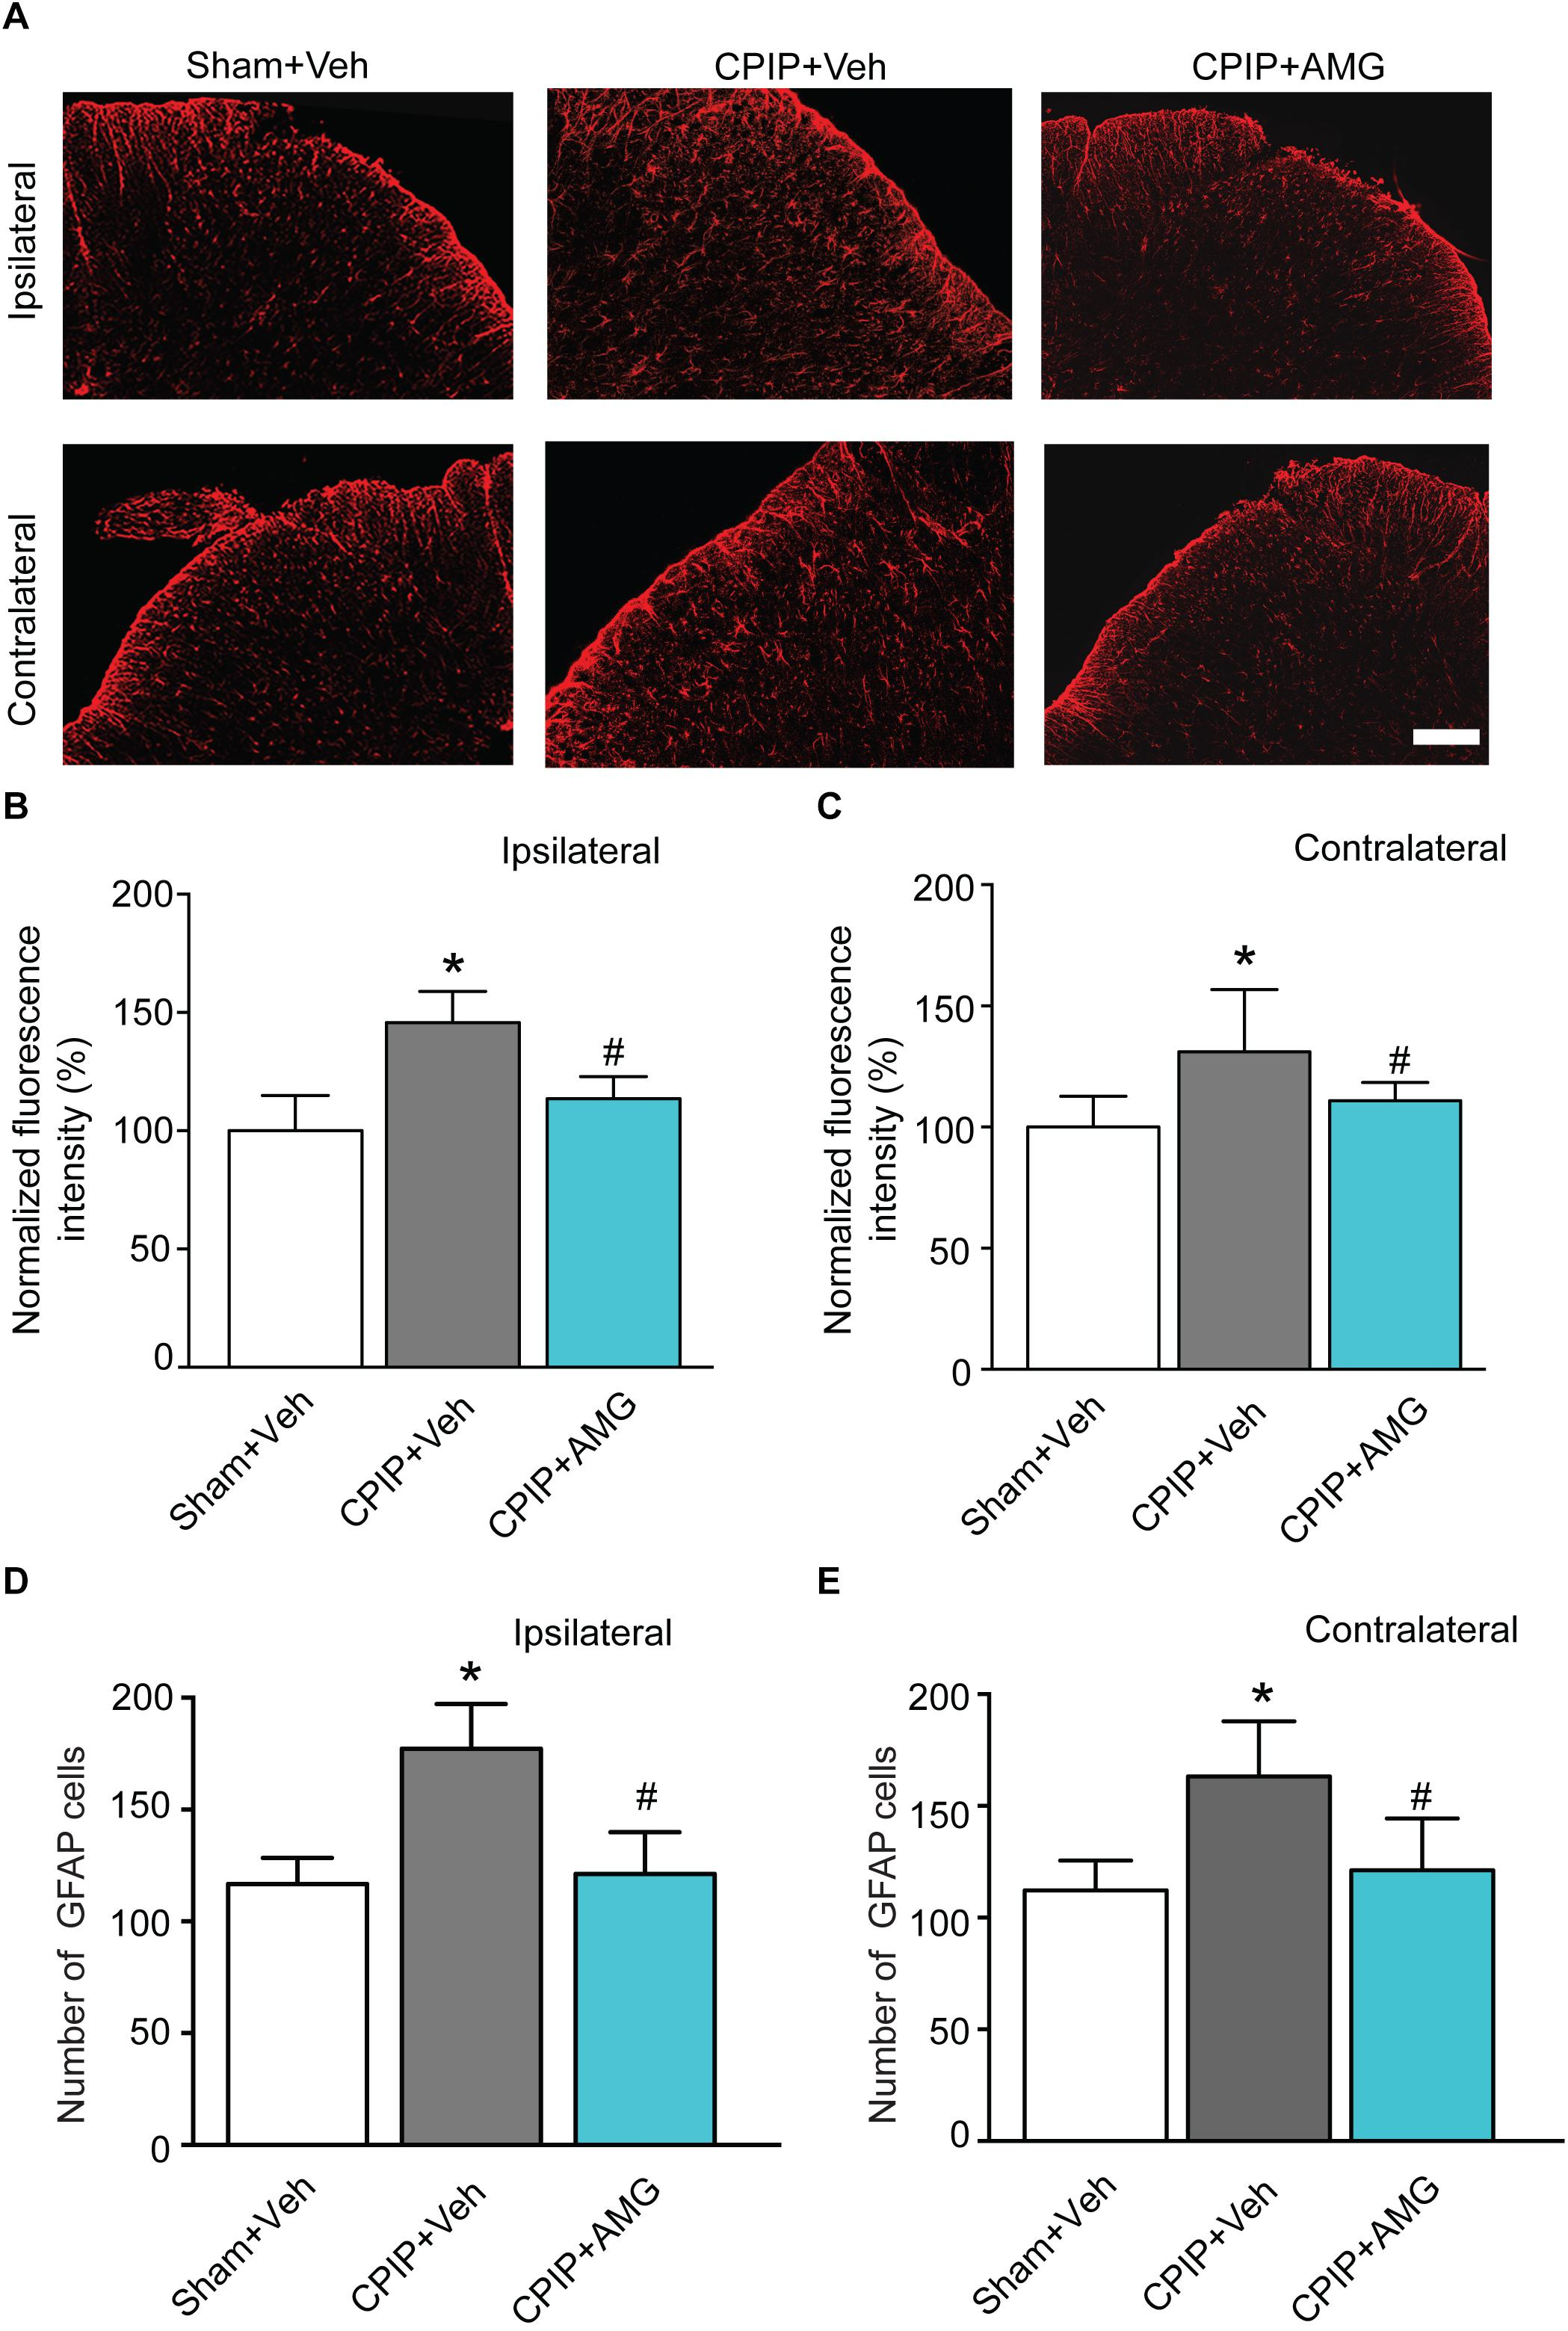 Frontiers | TRPV1 Channel Contributes to the Behavioral